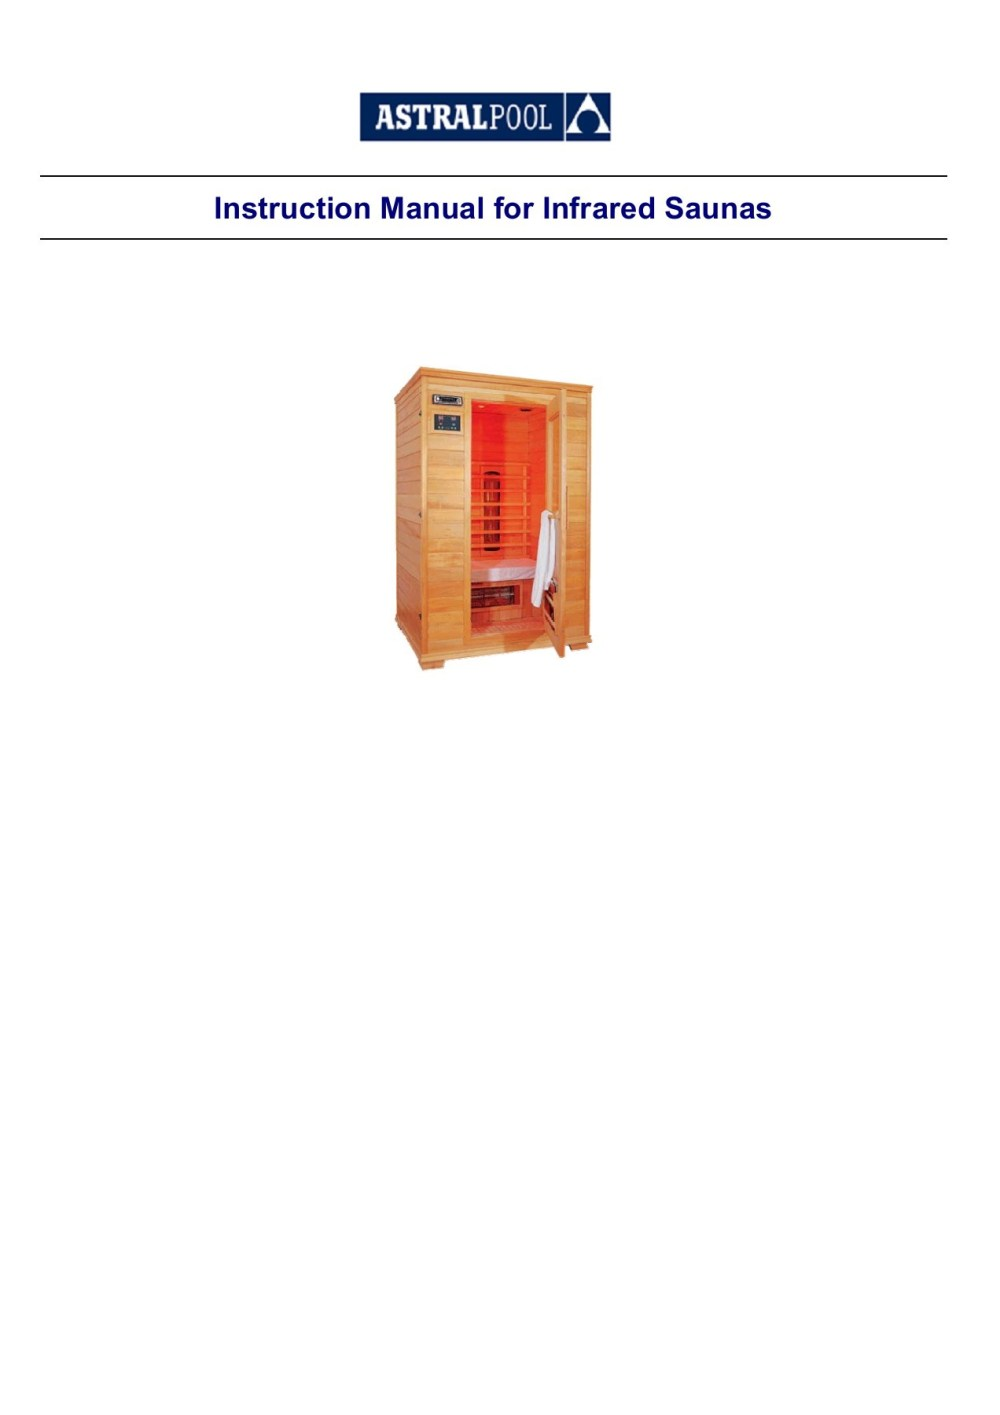 medium resolution of instruction manual for infrared saunas pages 1 49 text version fliphtml5